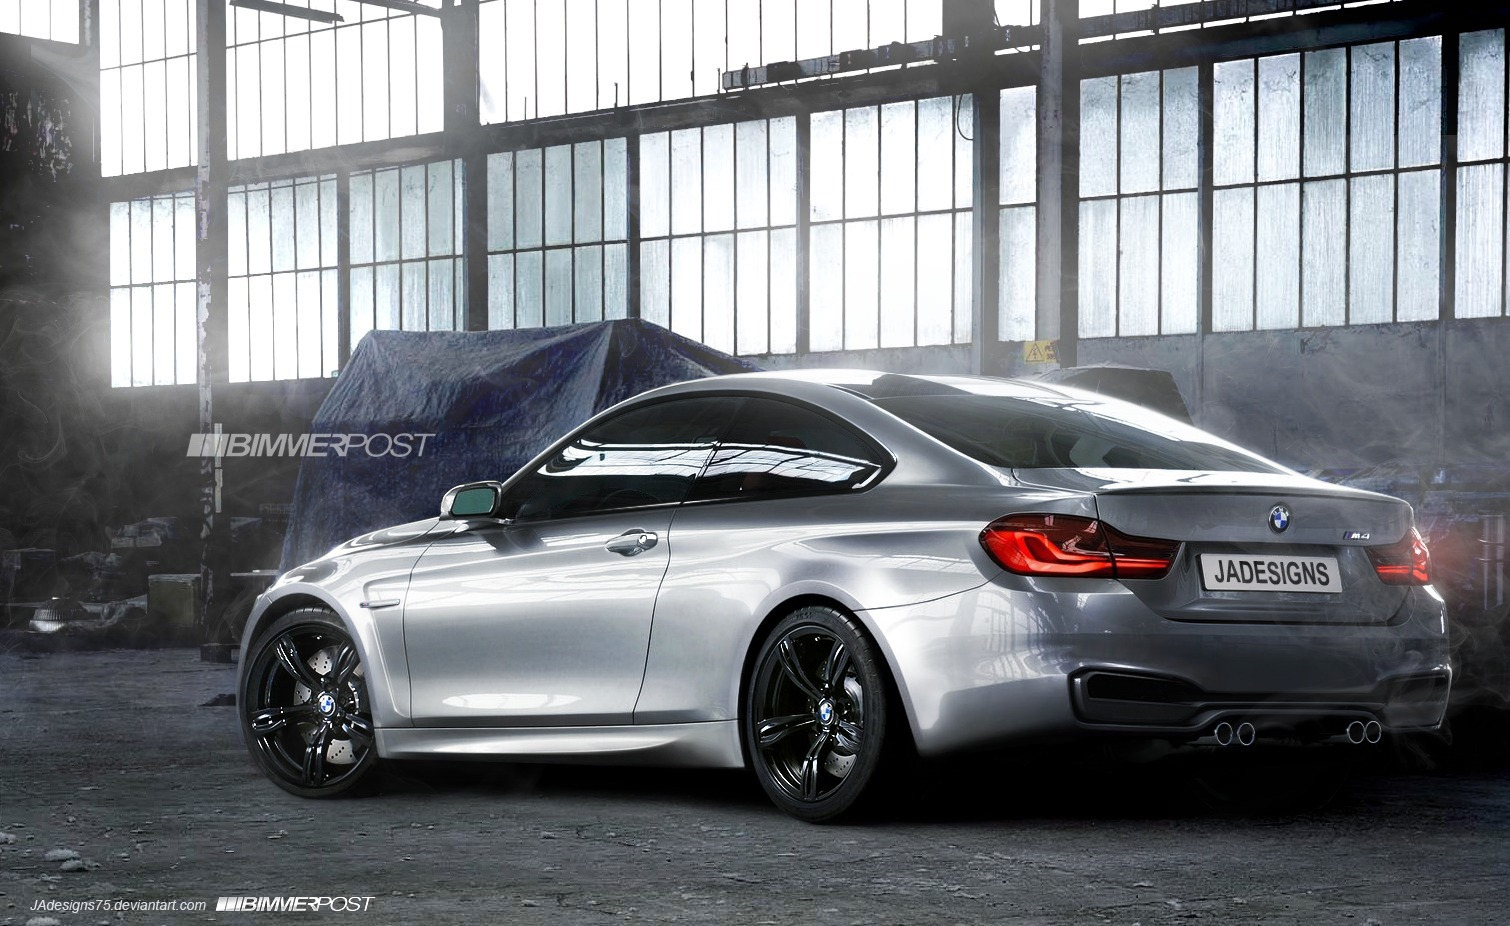 nancys car designs 2014 bmw m4 coupe rendered what do you think. Black Bedroom Furniture Sets. Home Design Ideas